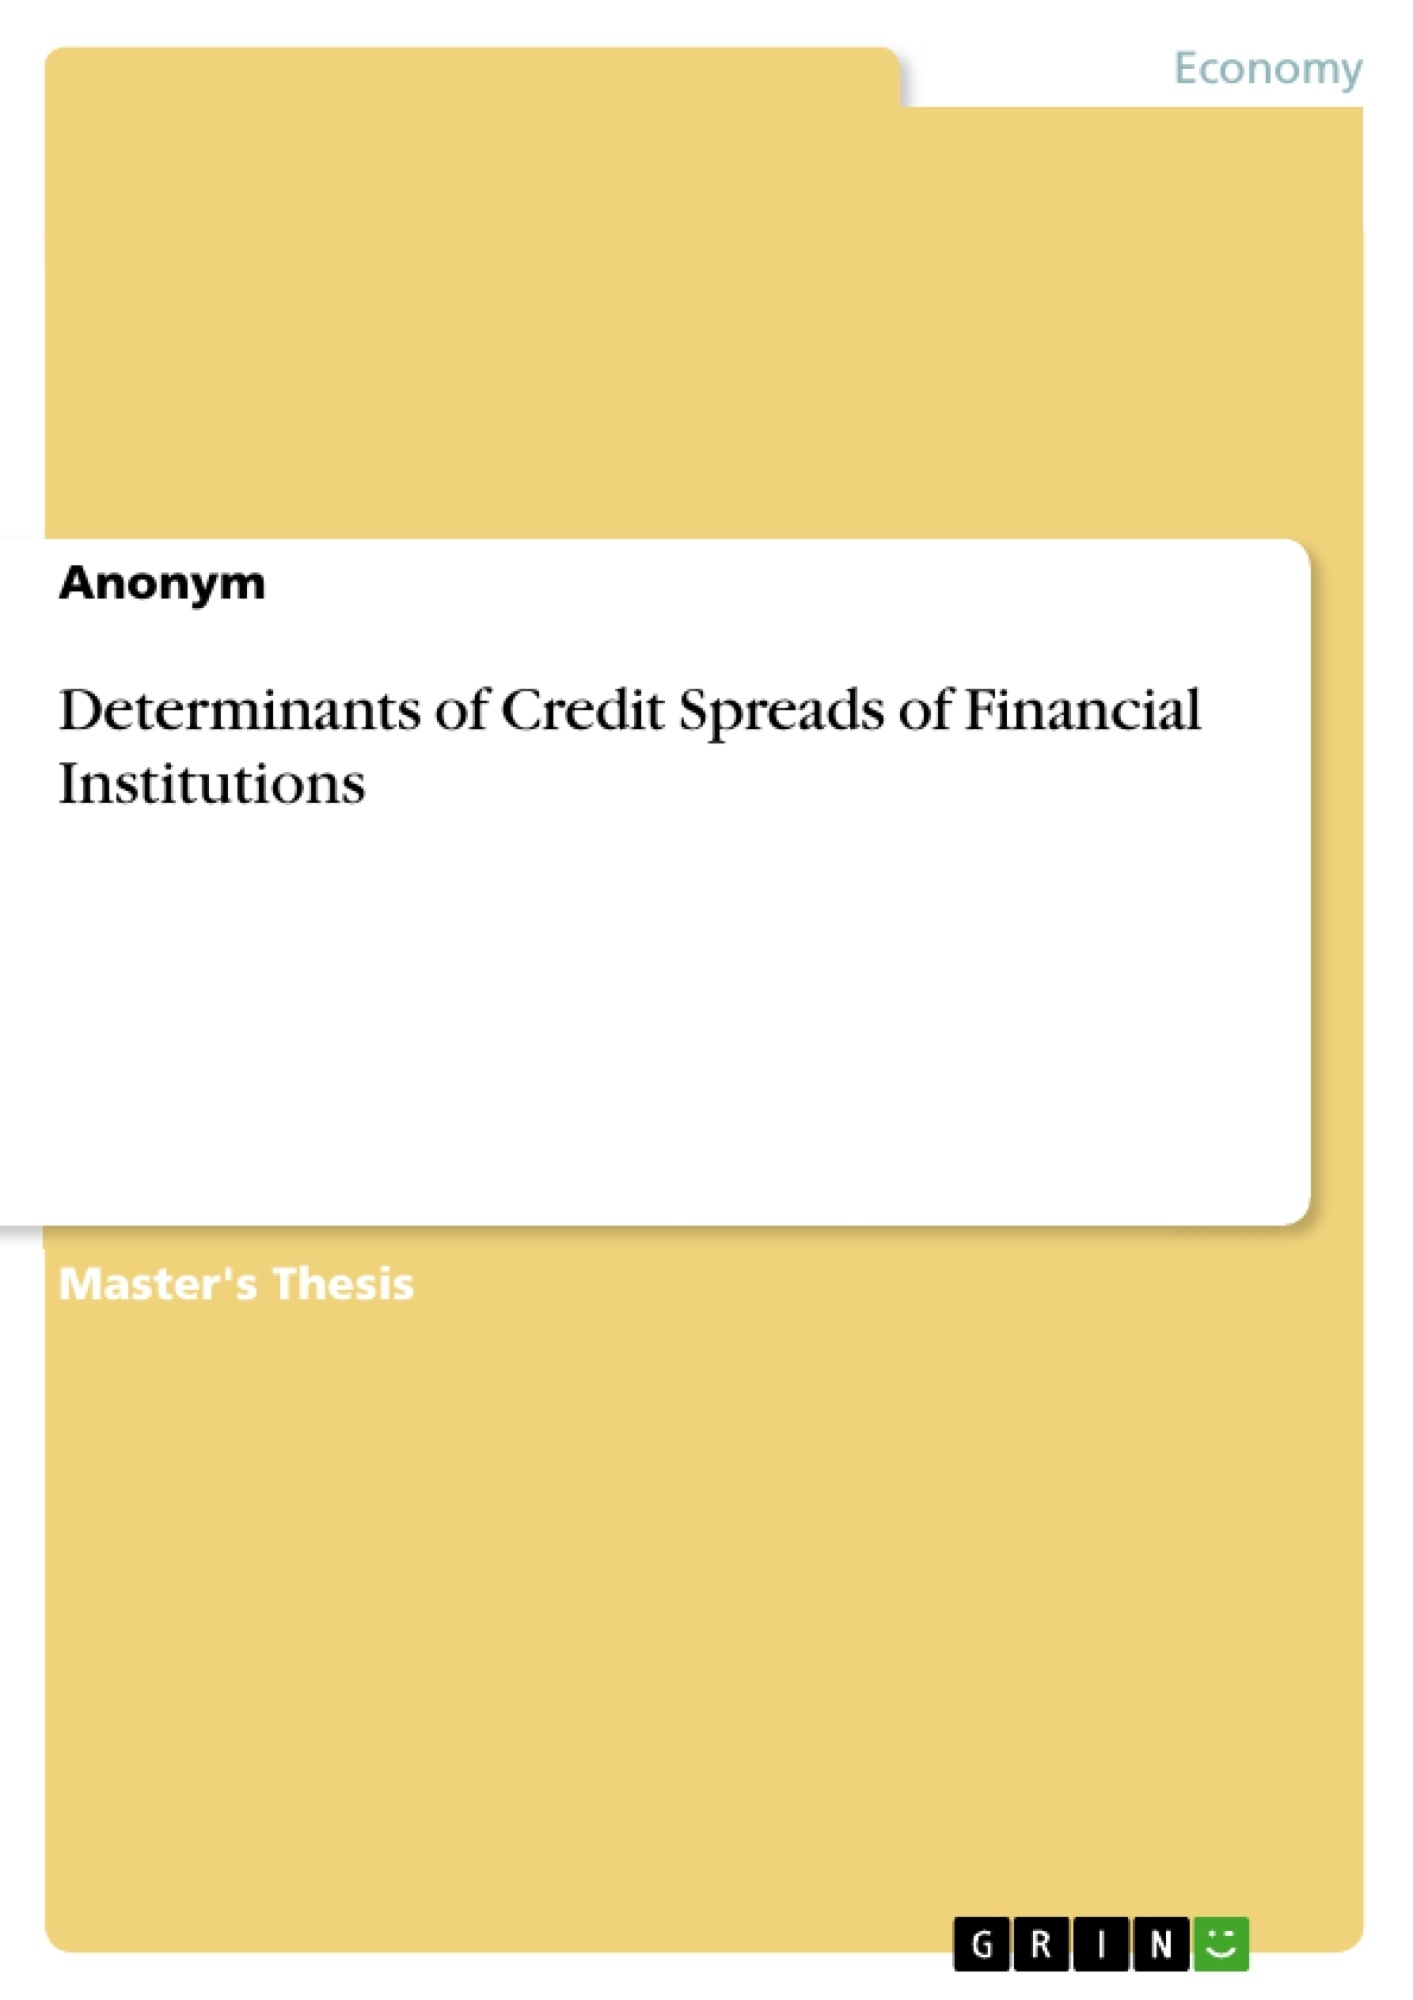 Title: Determinants of Credit Spreads of Financial Institutions